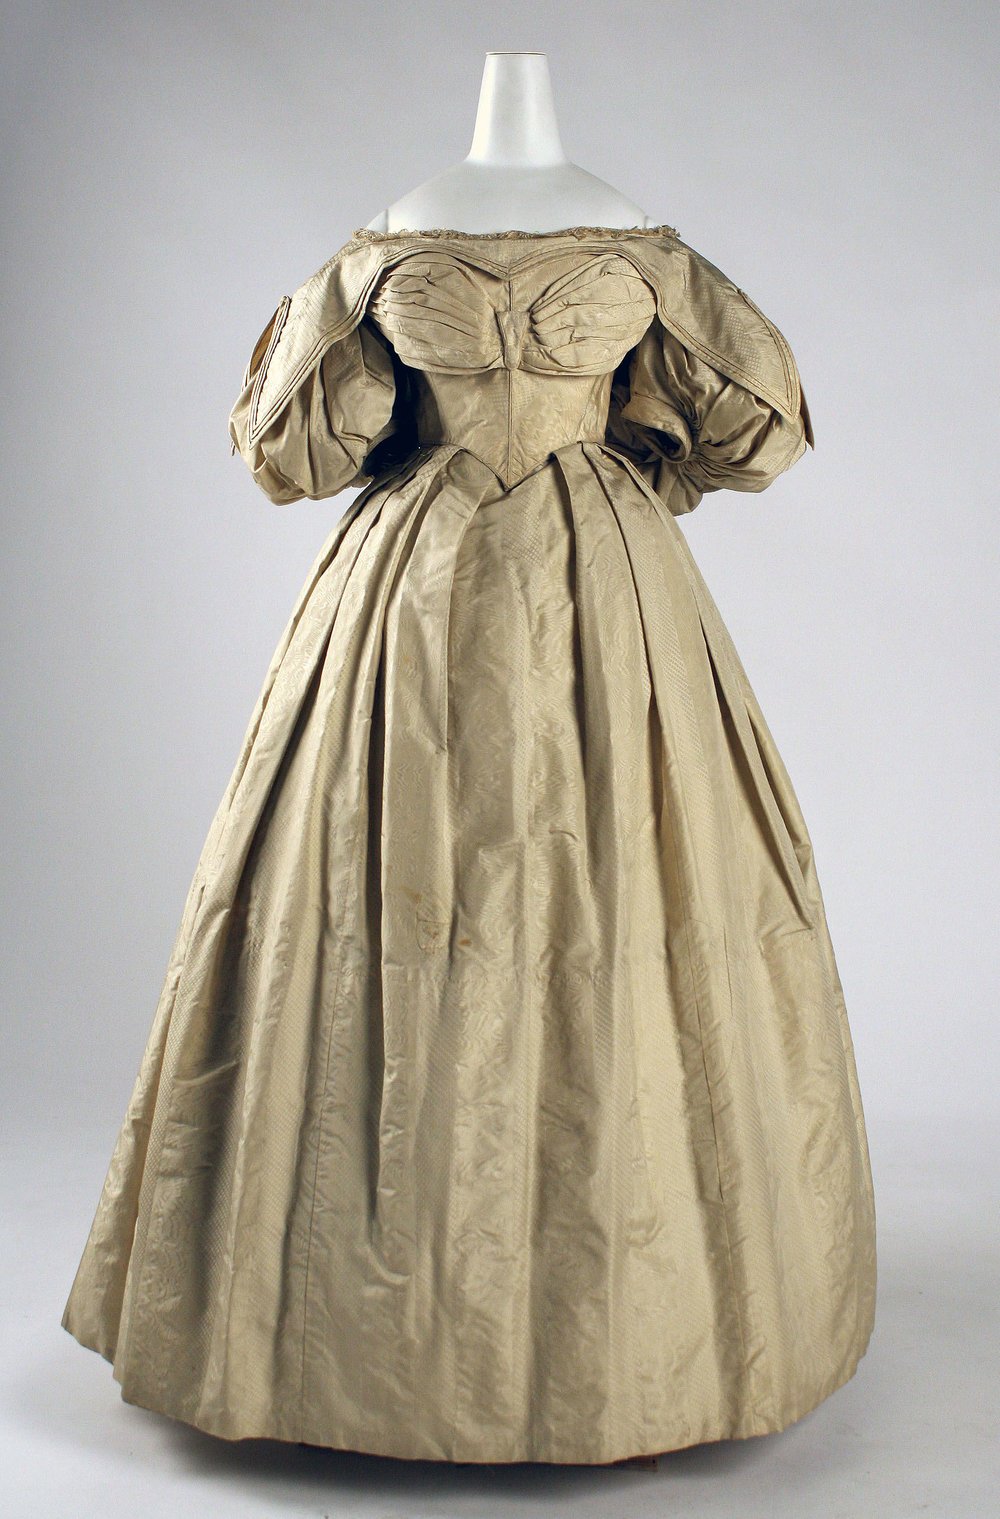 1830s Dress | The Met Museum